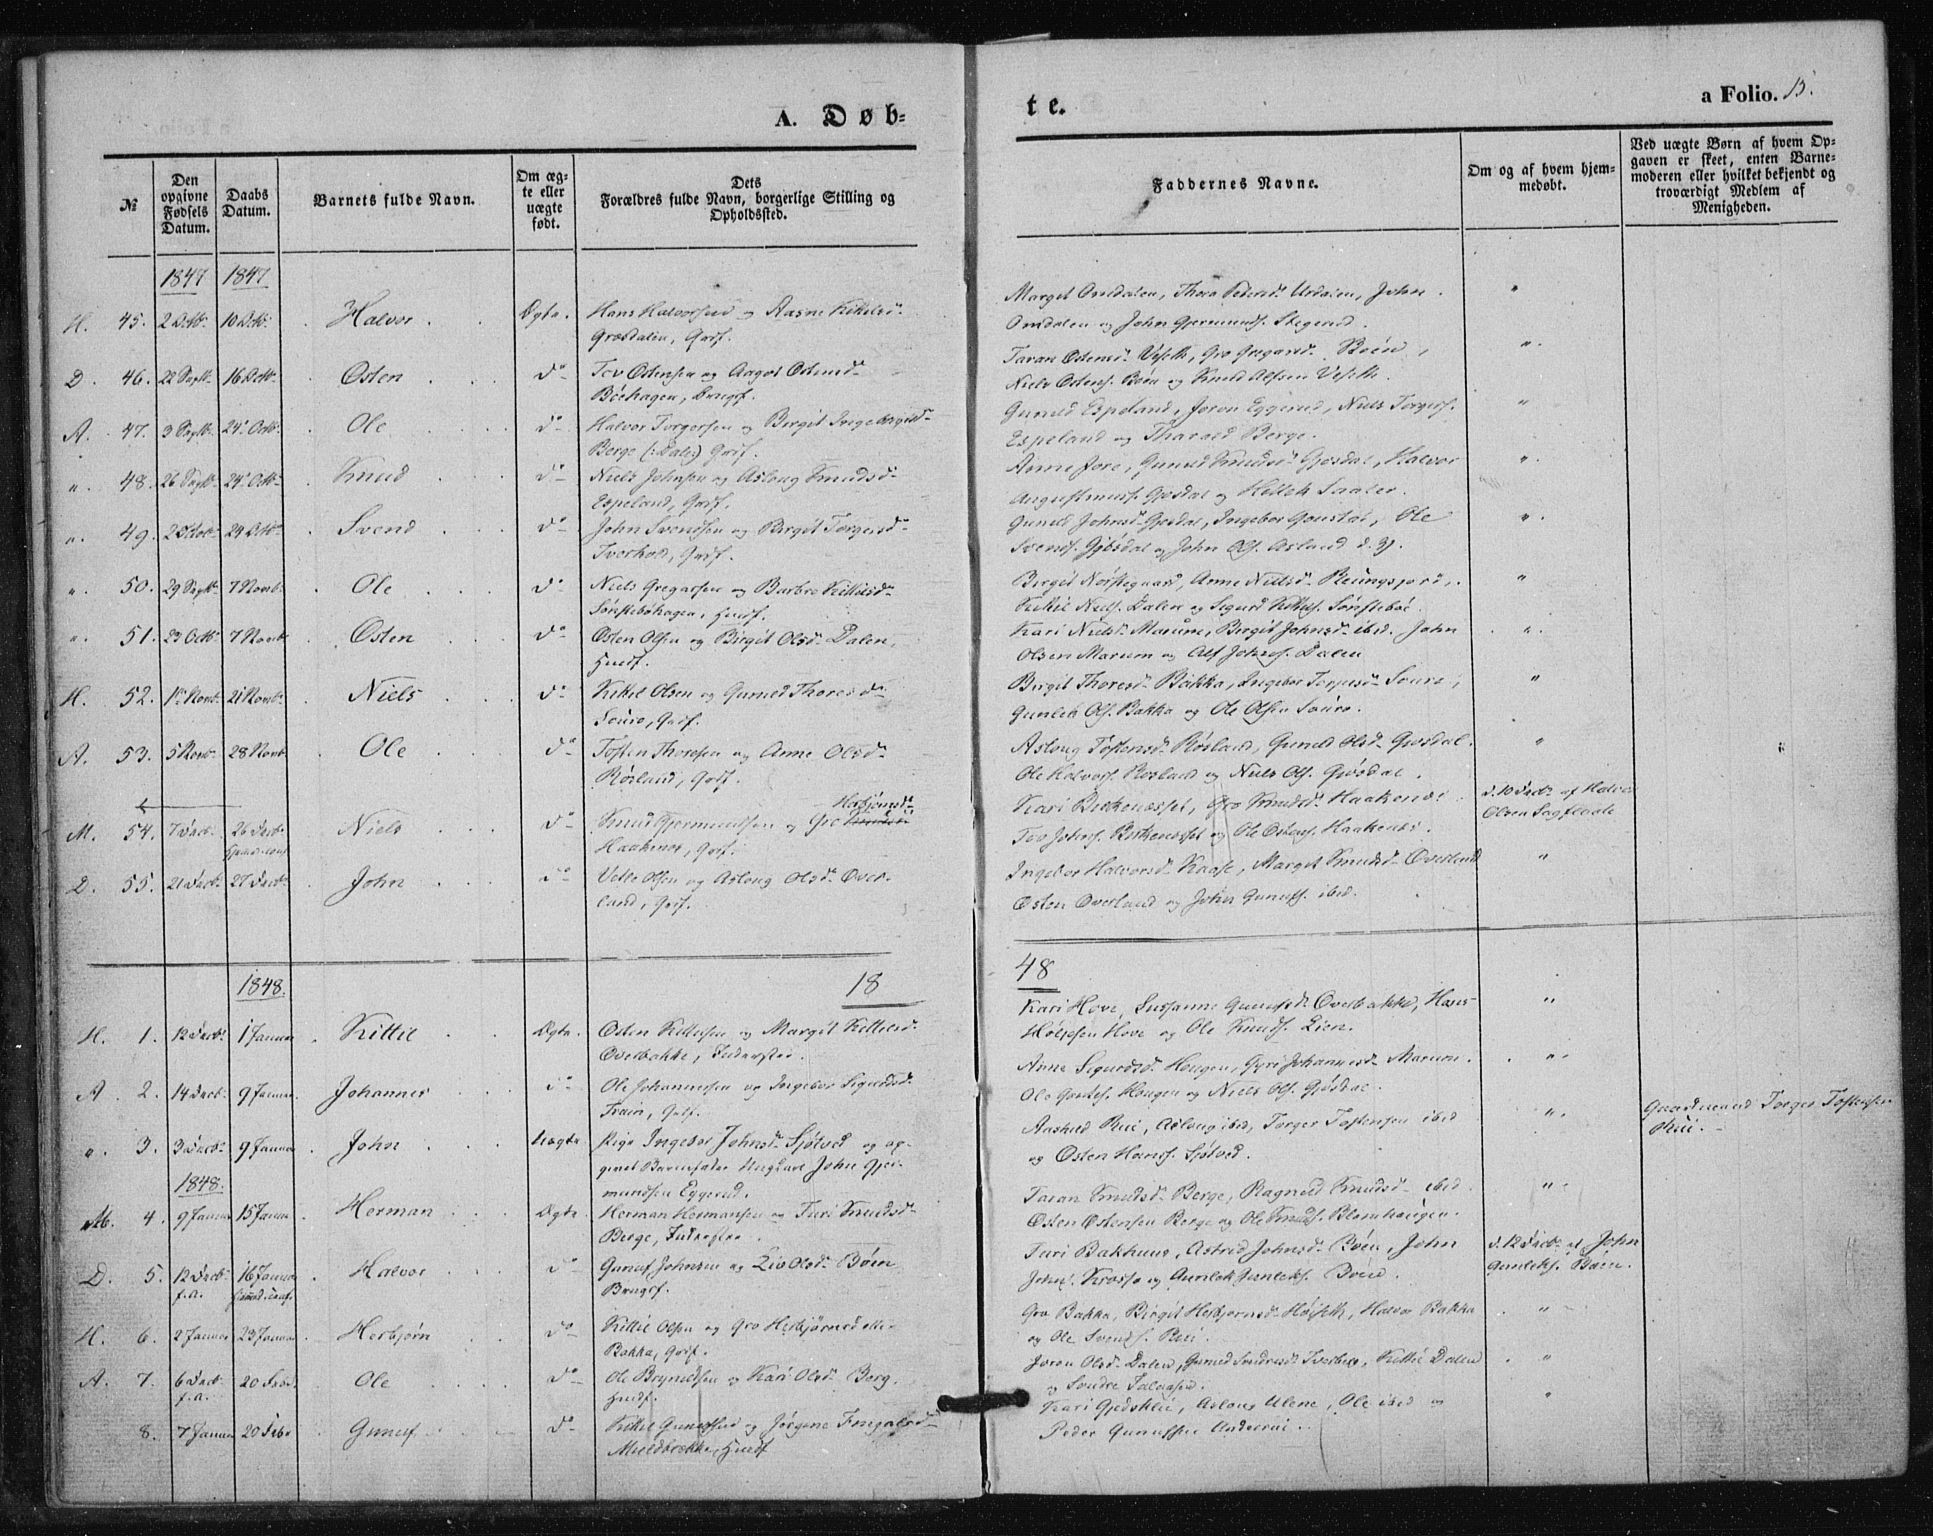 SAKO, Tinn kirkebøker, F/Fa/L0005: Parish register (official) no. I 5, 1844-1856, p. 15